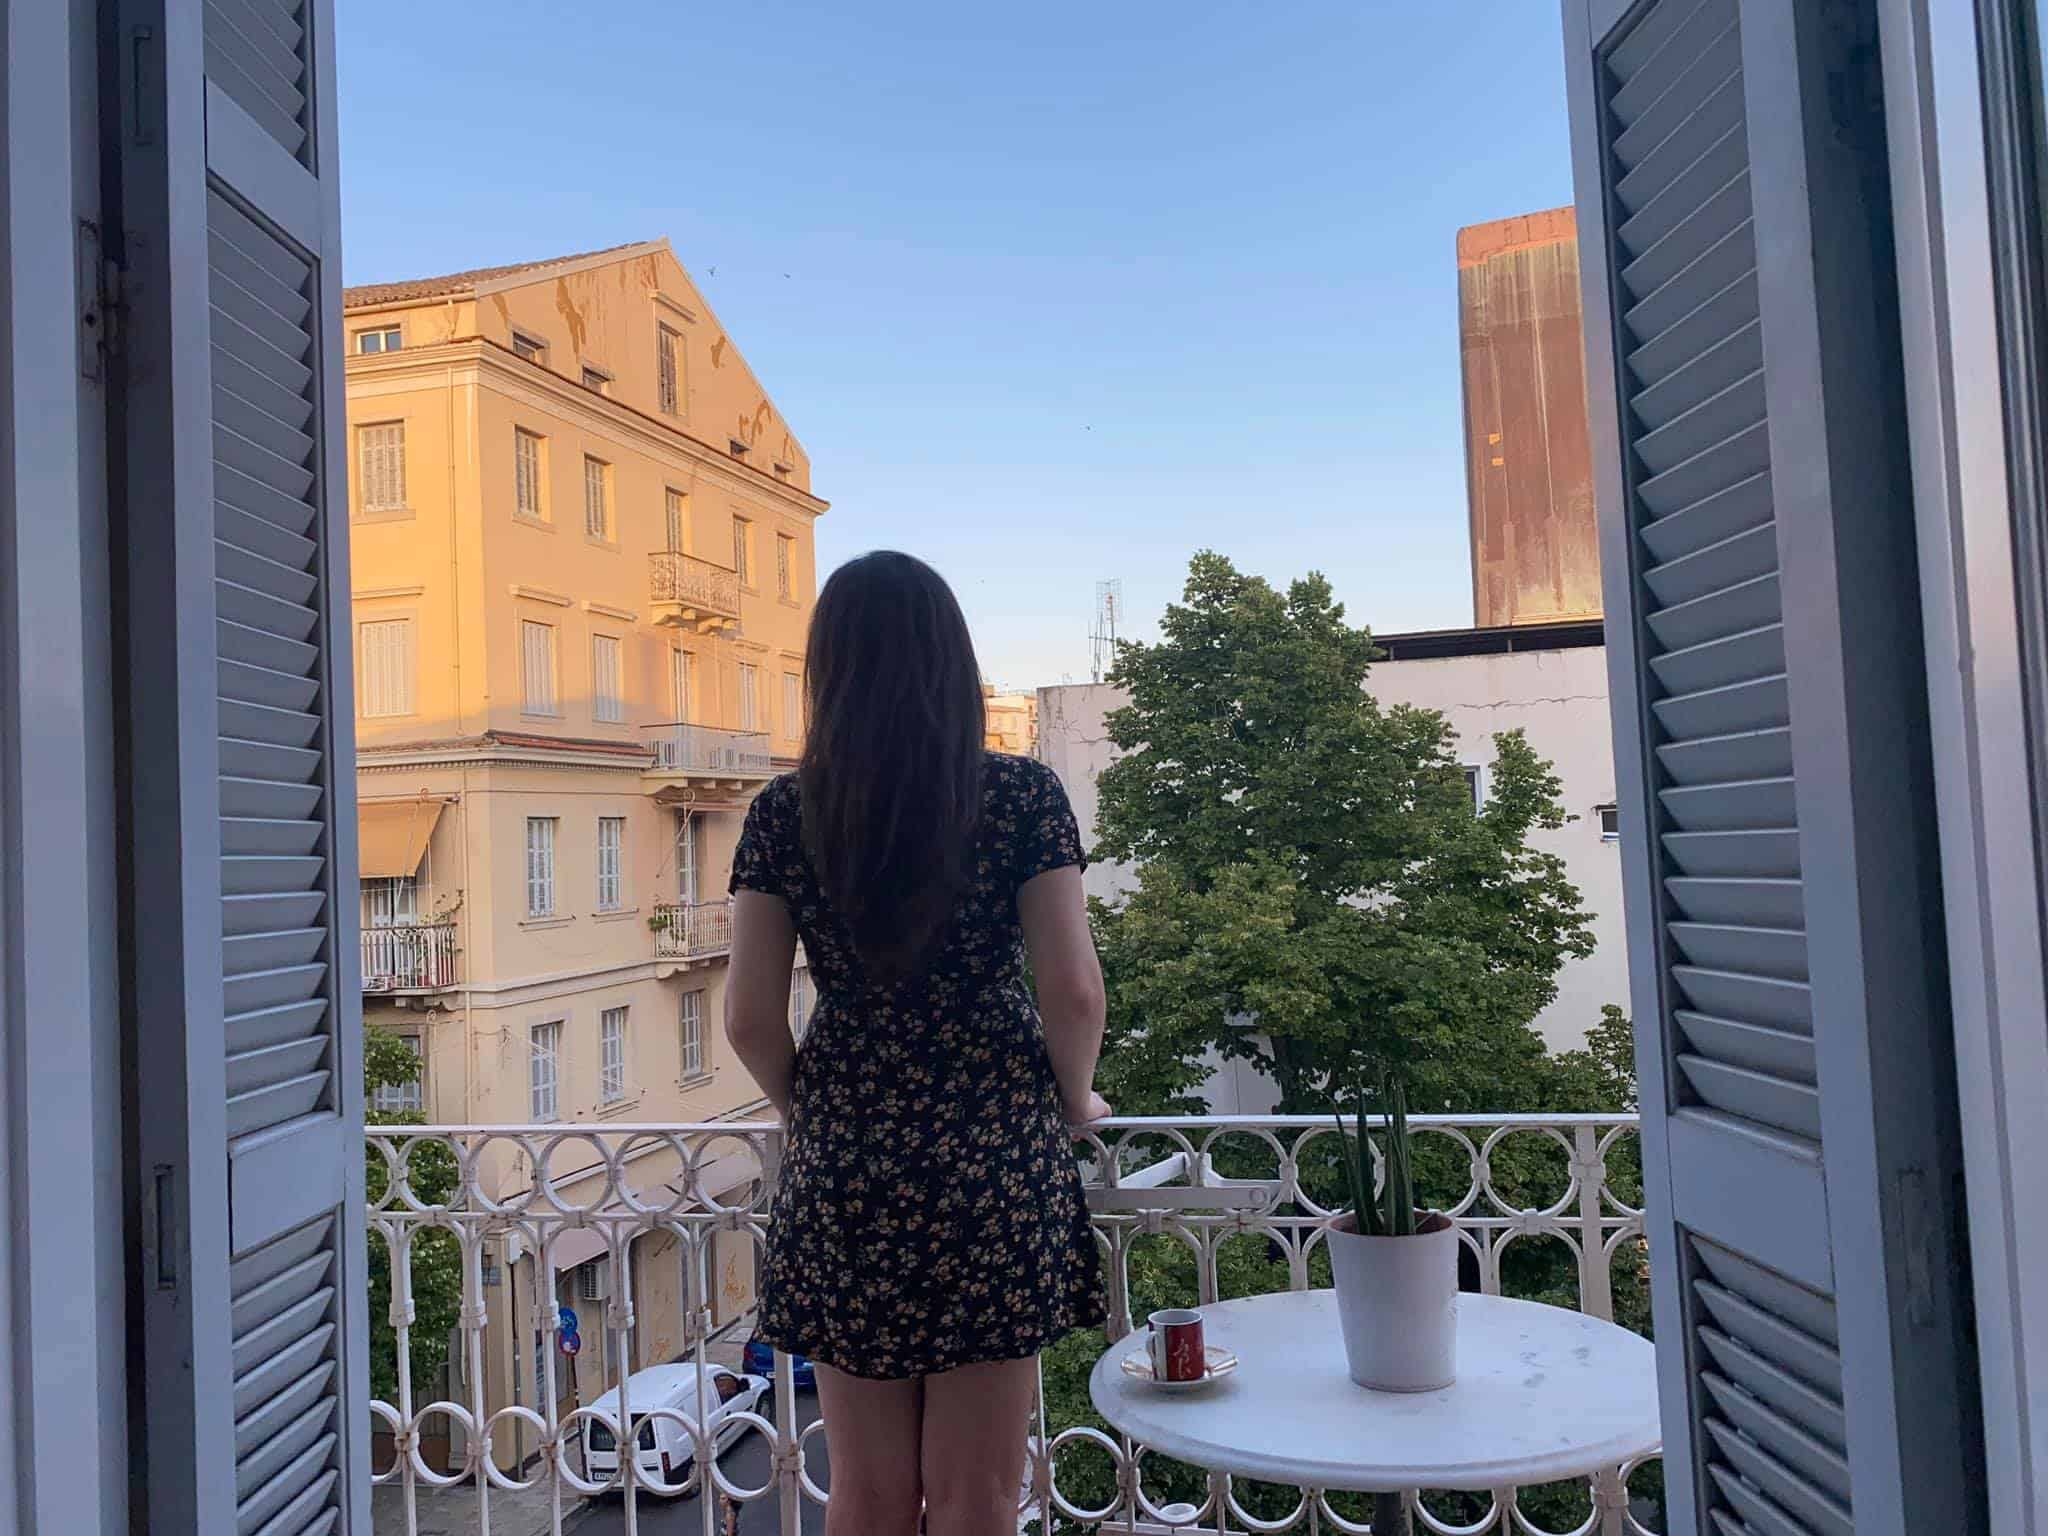 Traveling with IBS: Educate yourself as much as you can before your trip